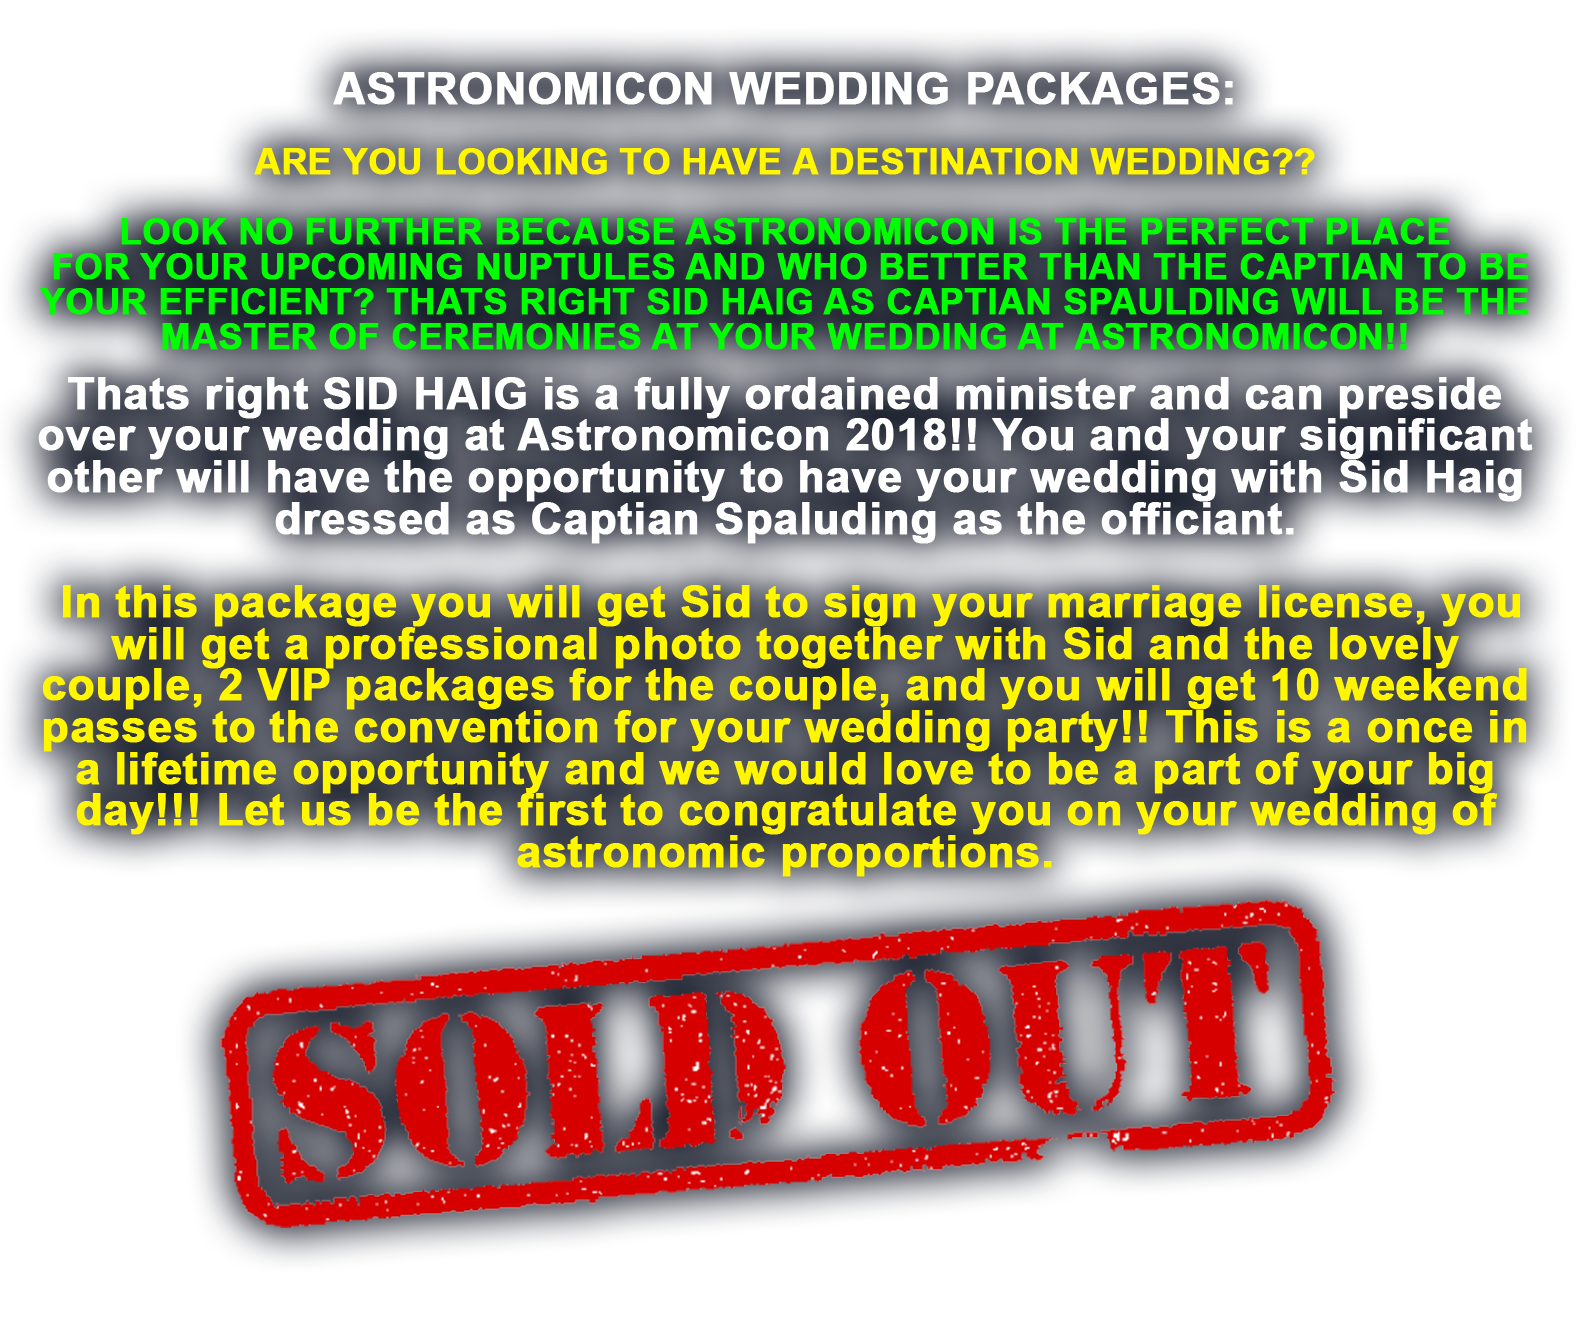 Astronomicon-Wedding-Packages-Web-Image-1.png